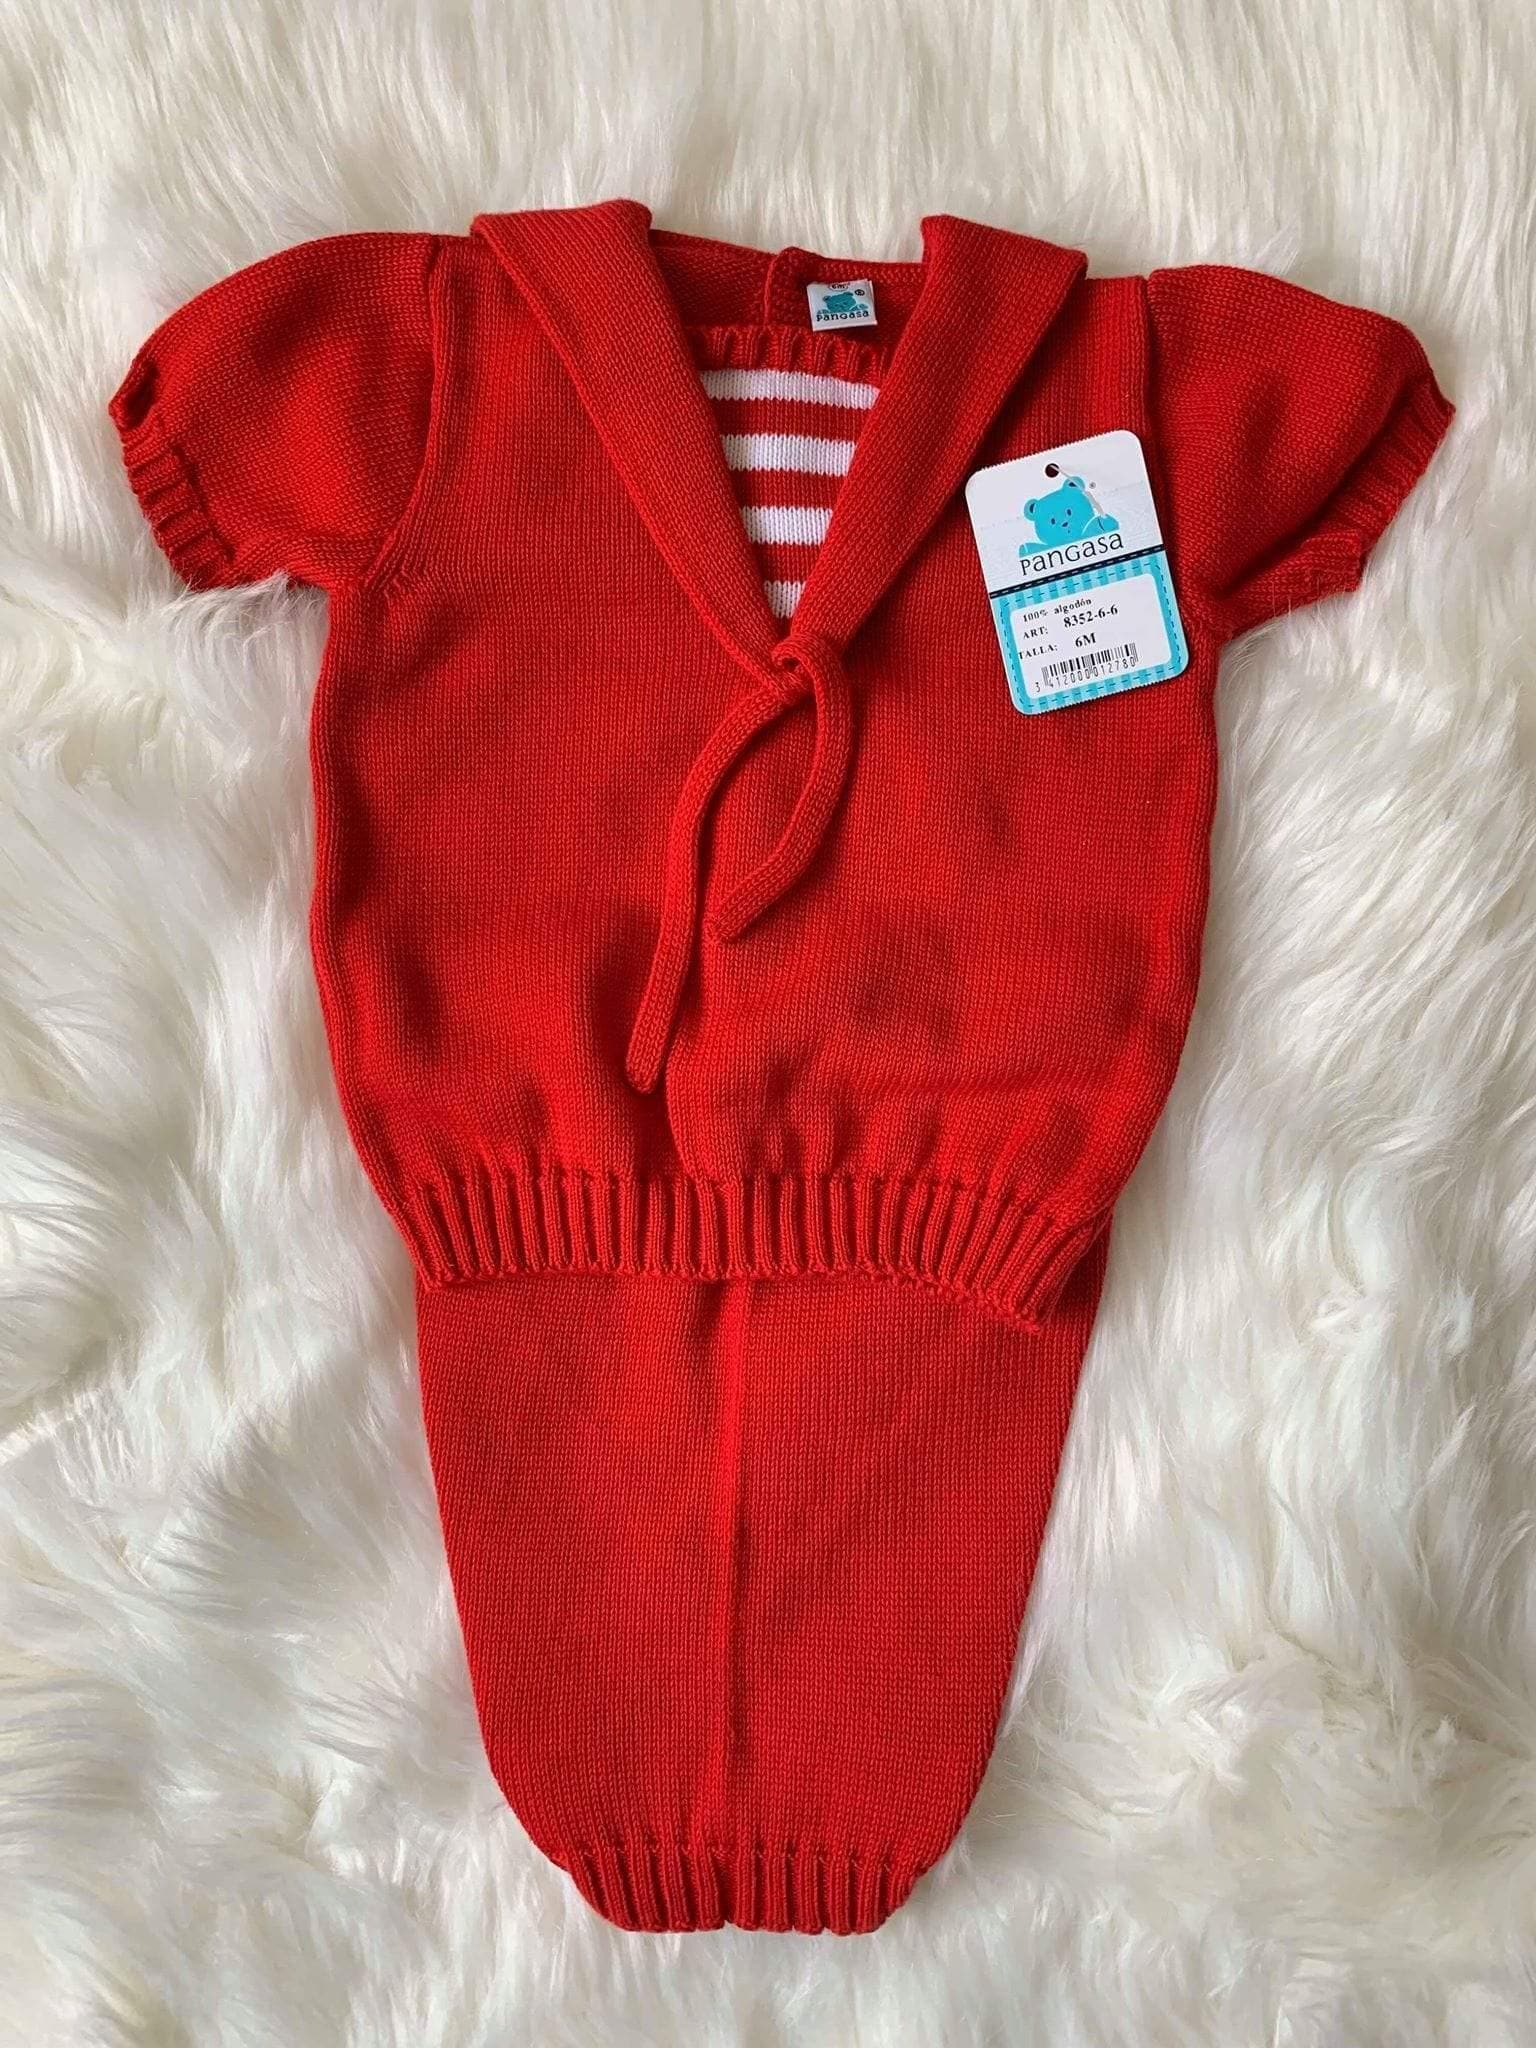 Pangasa Baby Baby Knitwear Pangasa Baby - Red & White Sailor 2pc Knitted Set 8352